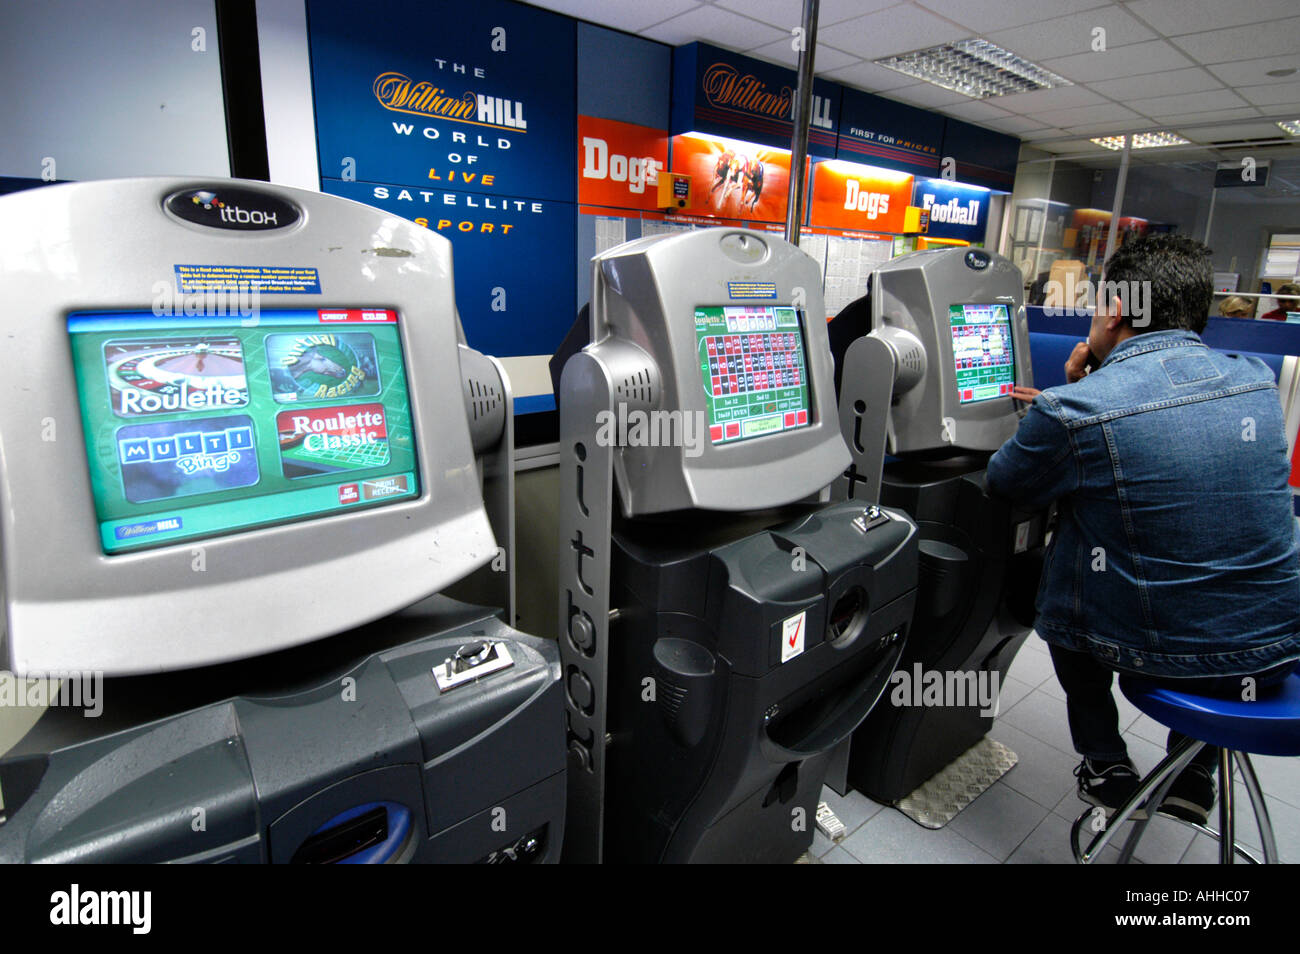 People playing roulette on fixed odds betting terminals at William Hill bookmakers, England, UK - Stock Image